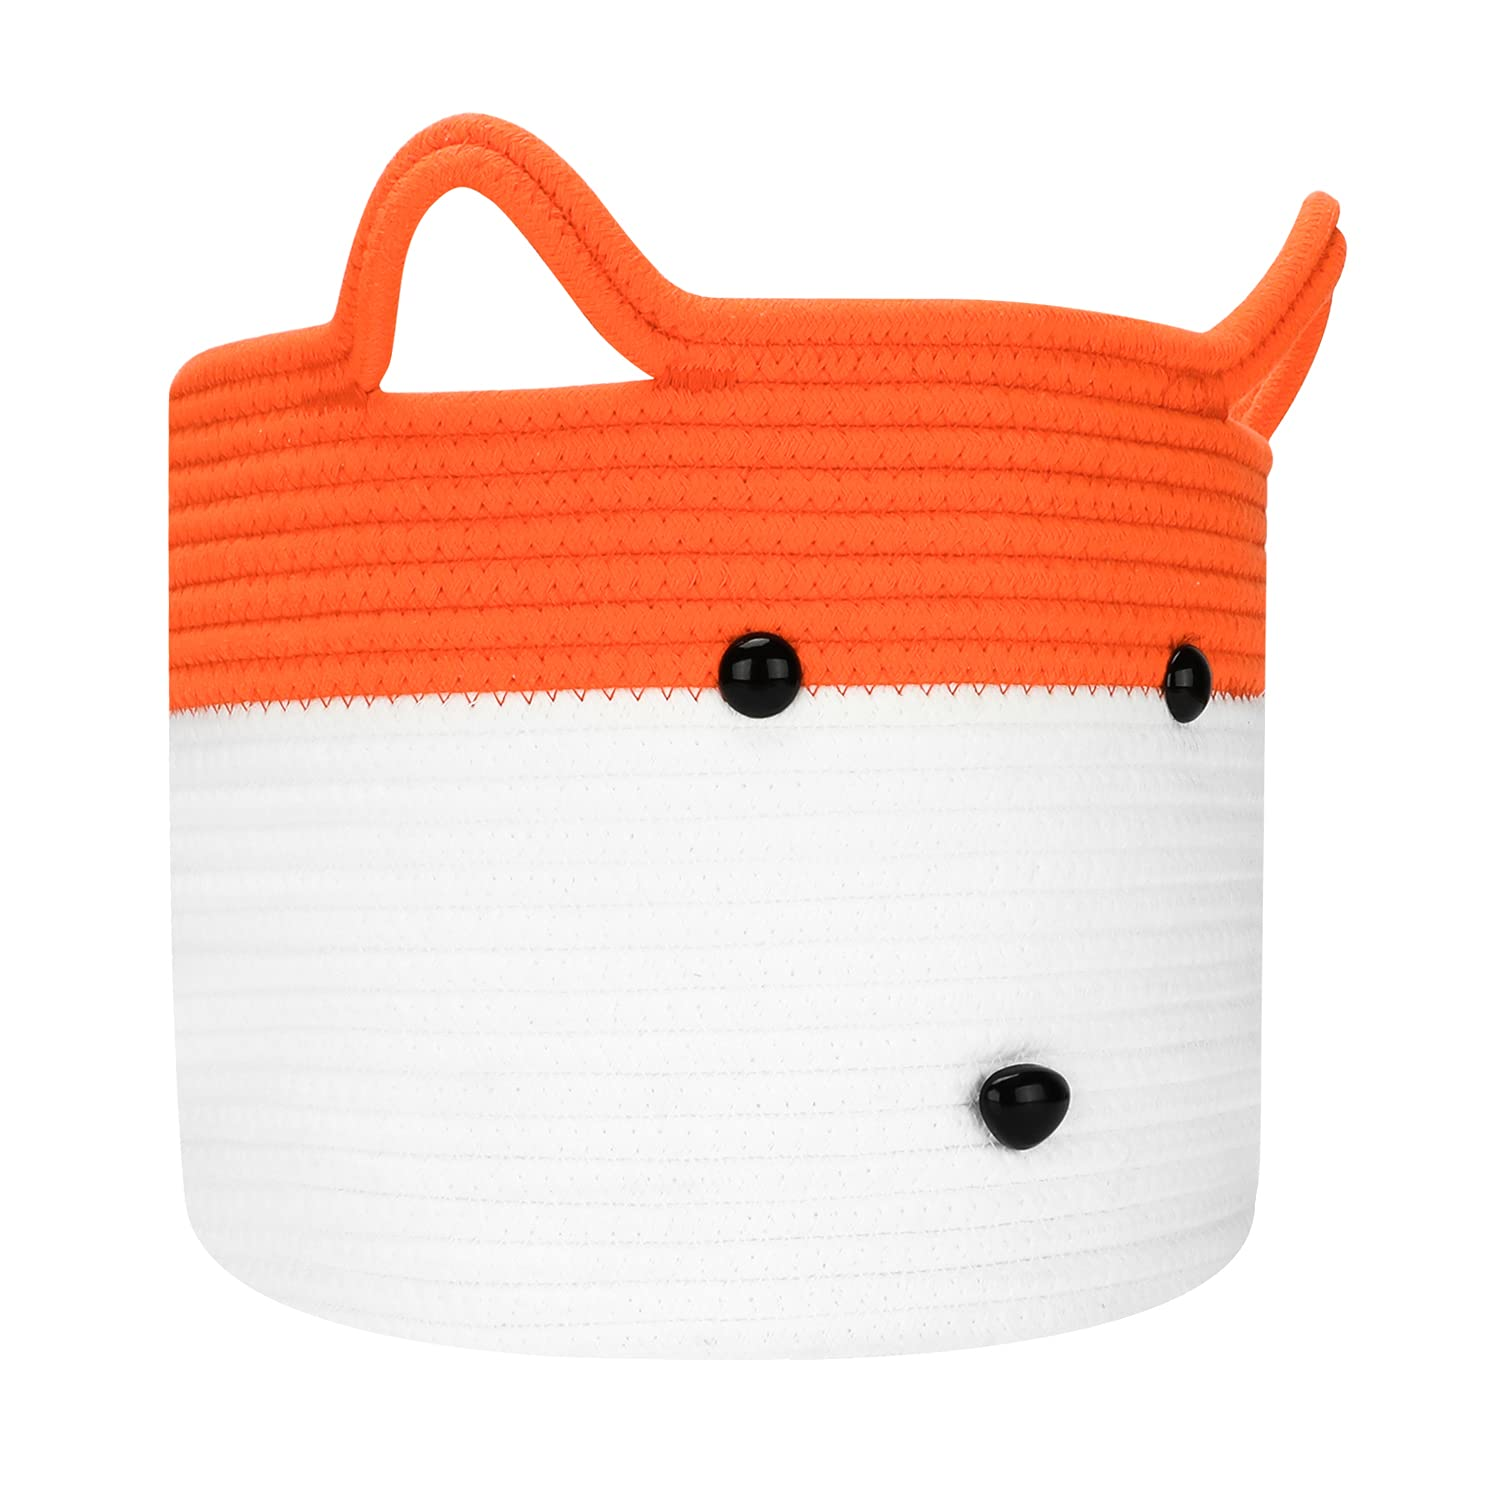 Cute Cotton Rope Basket Collapsibe Pet Toy Basket | Hombins Baby Basket for Gifts Empty White Blanket Basket Washable Animal Woven Hamper for Clothes, Socks, Fox Basket, 12